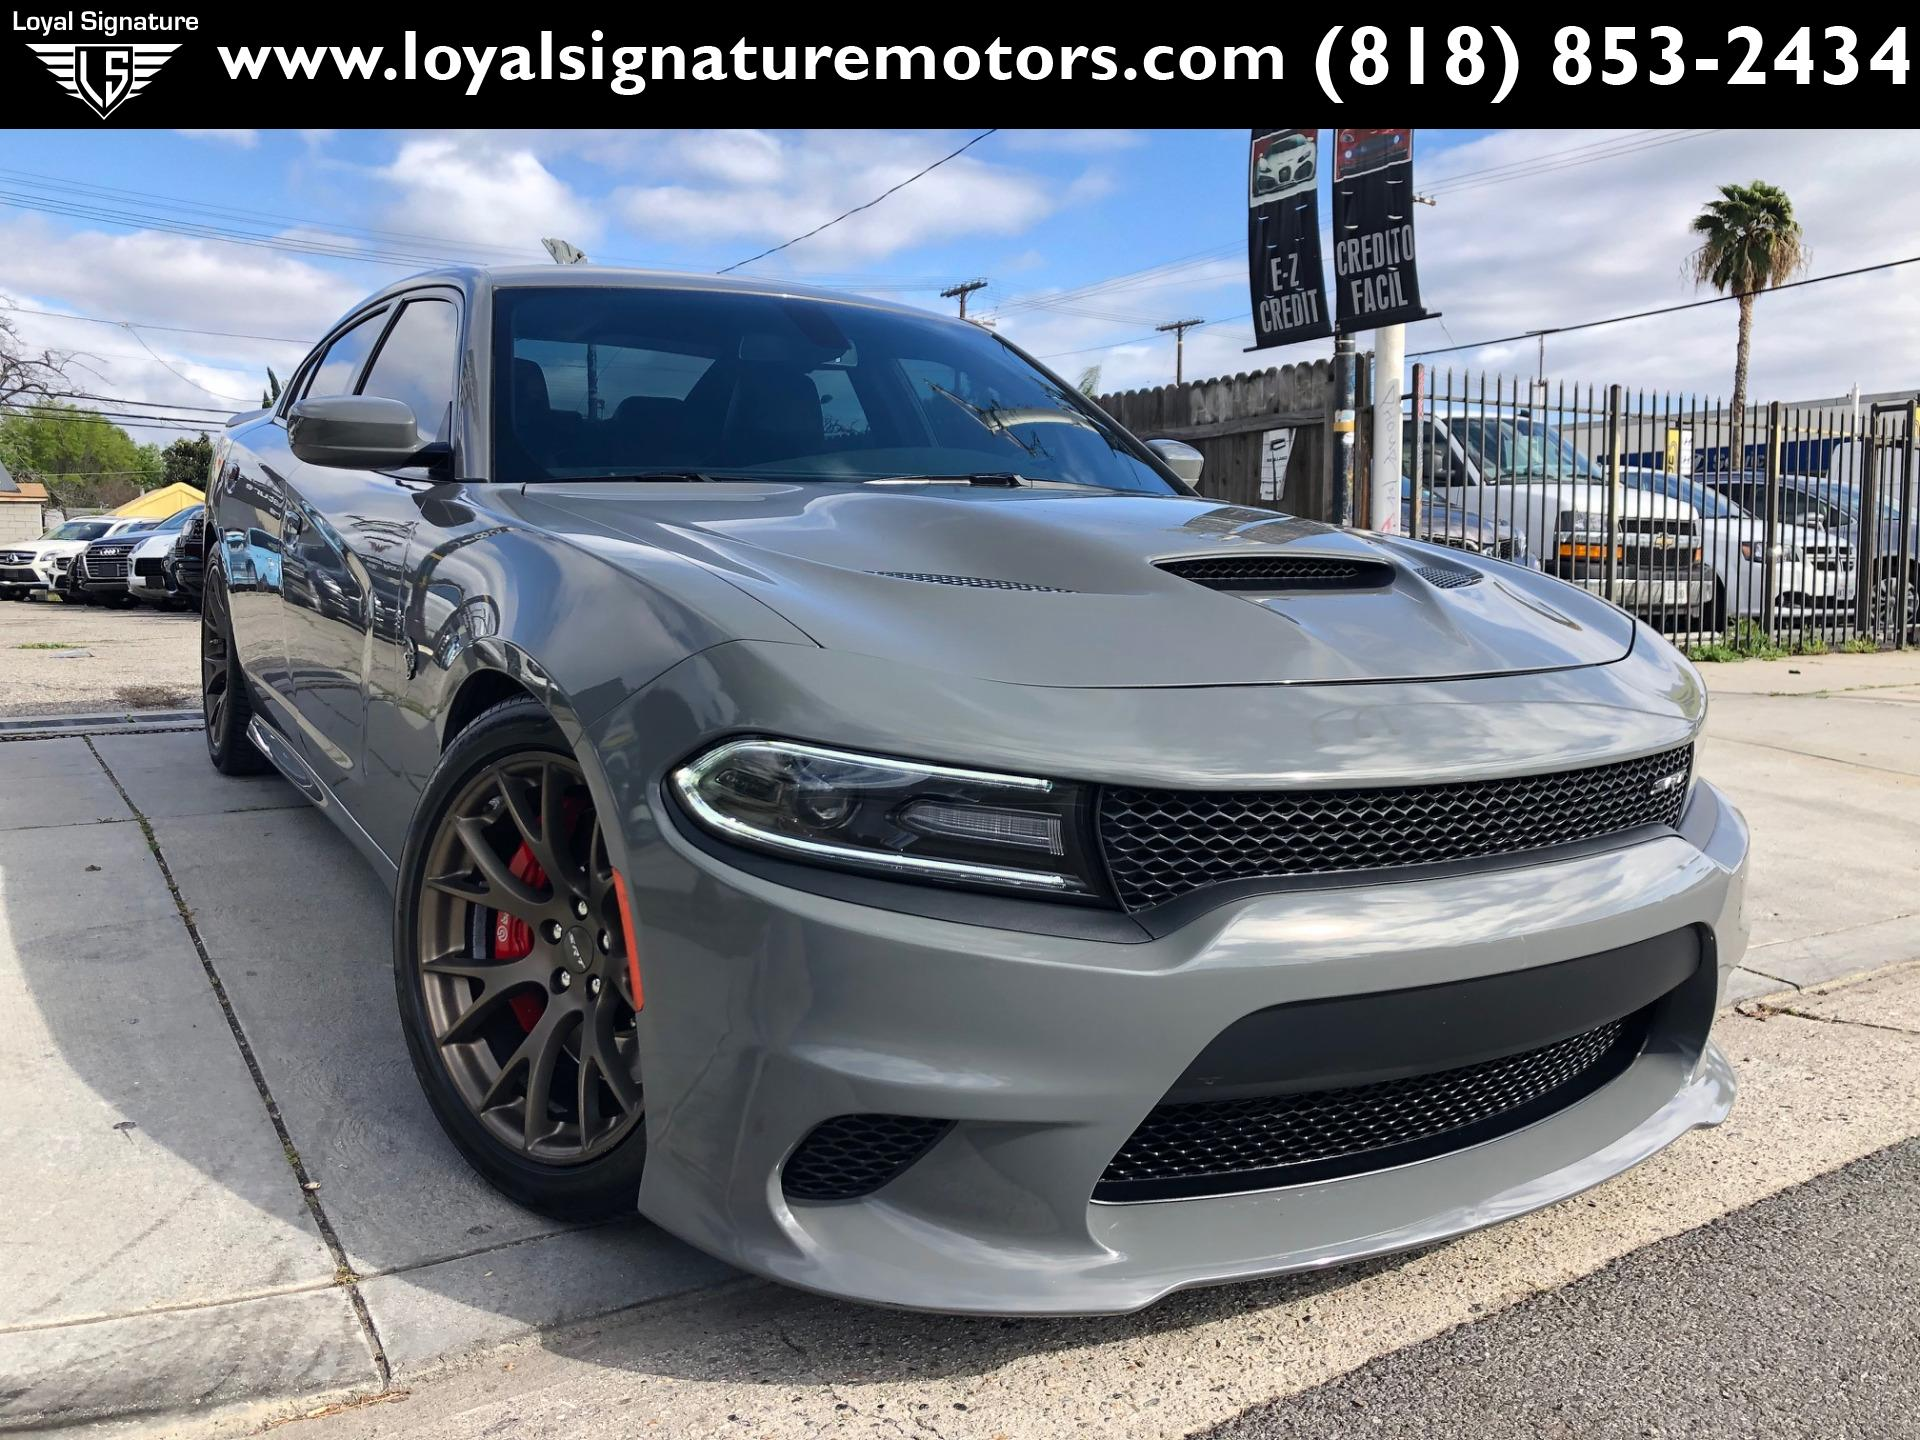 Used 2017 Dodge Charger SRT Hellcat | Van Nuys, CA